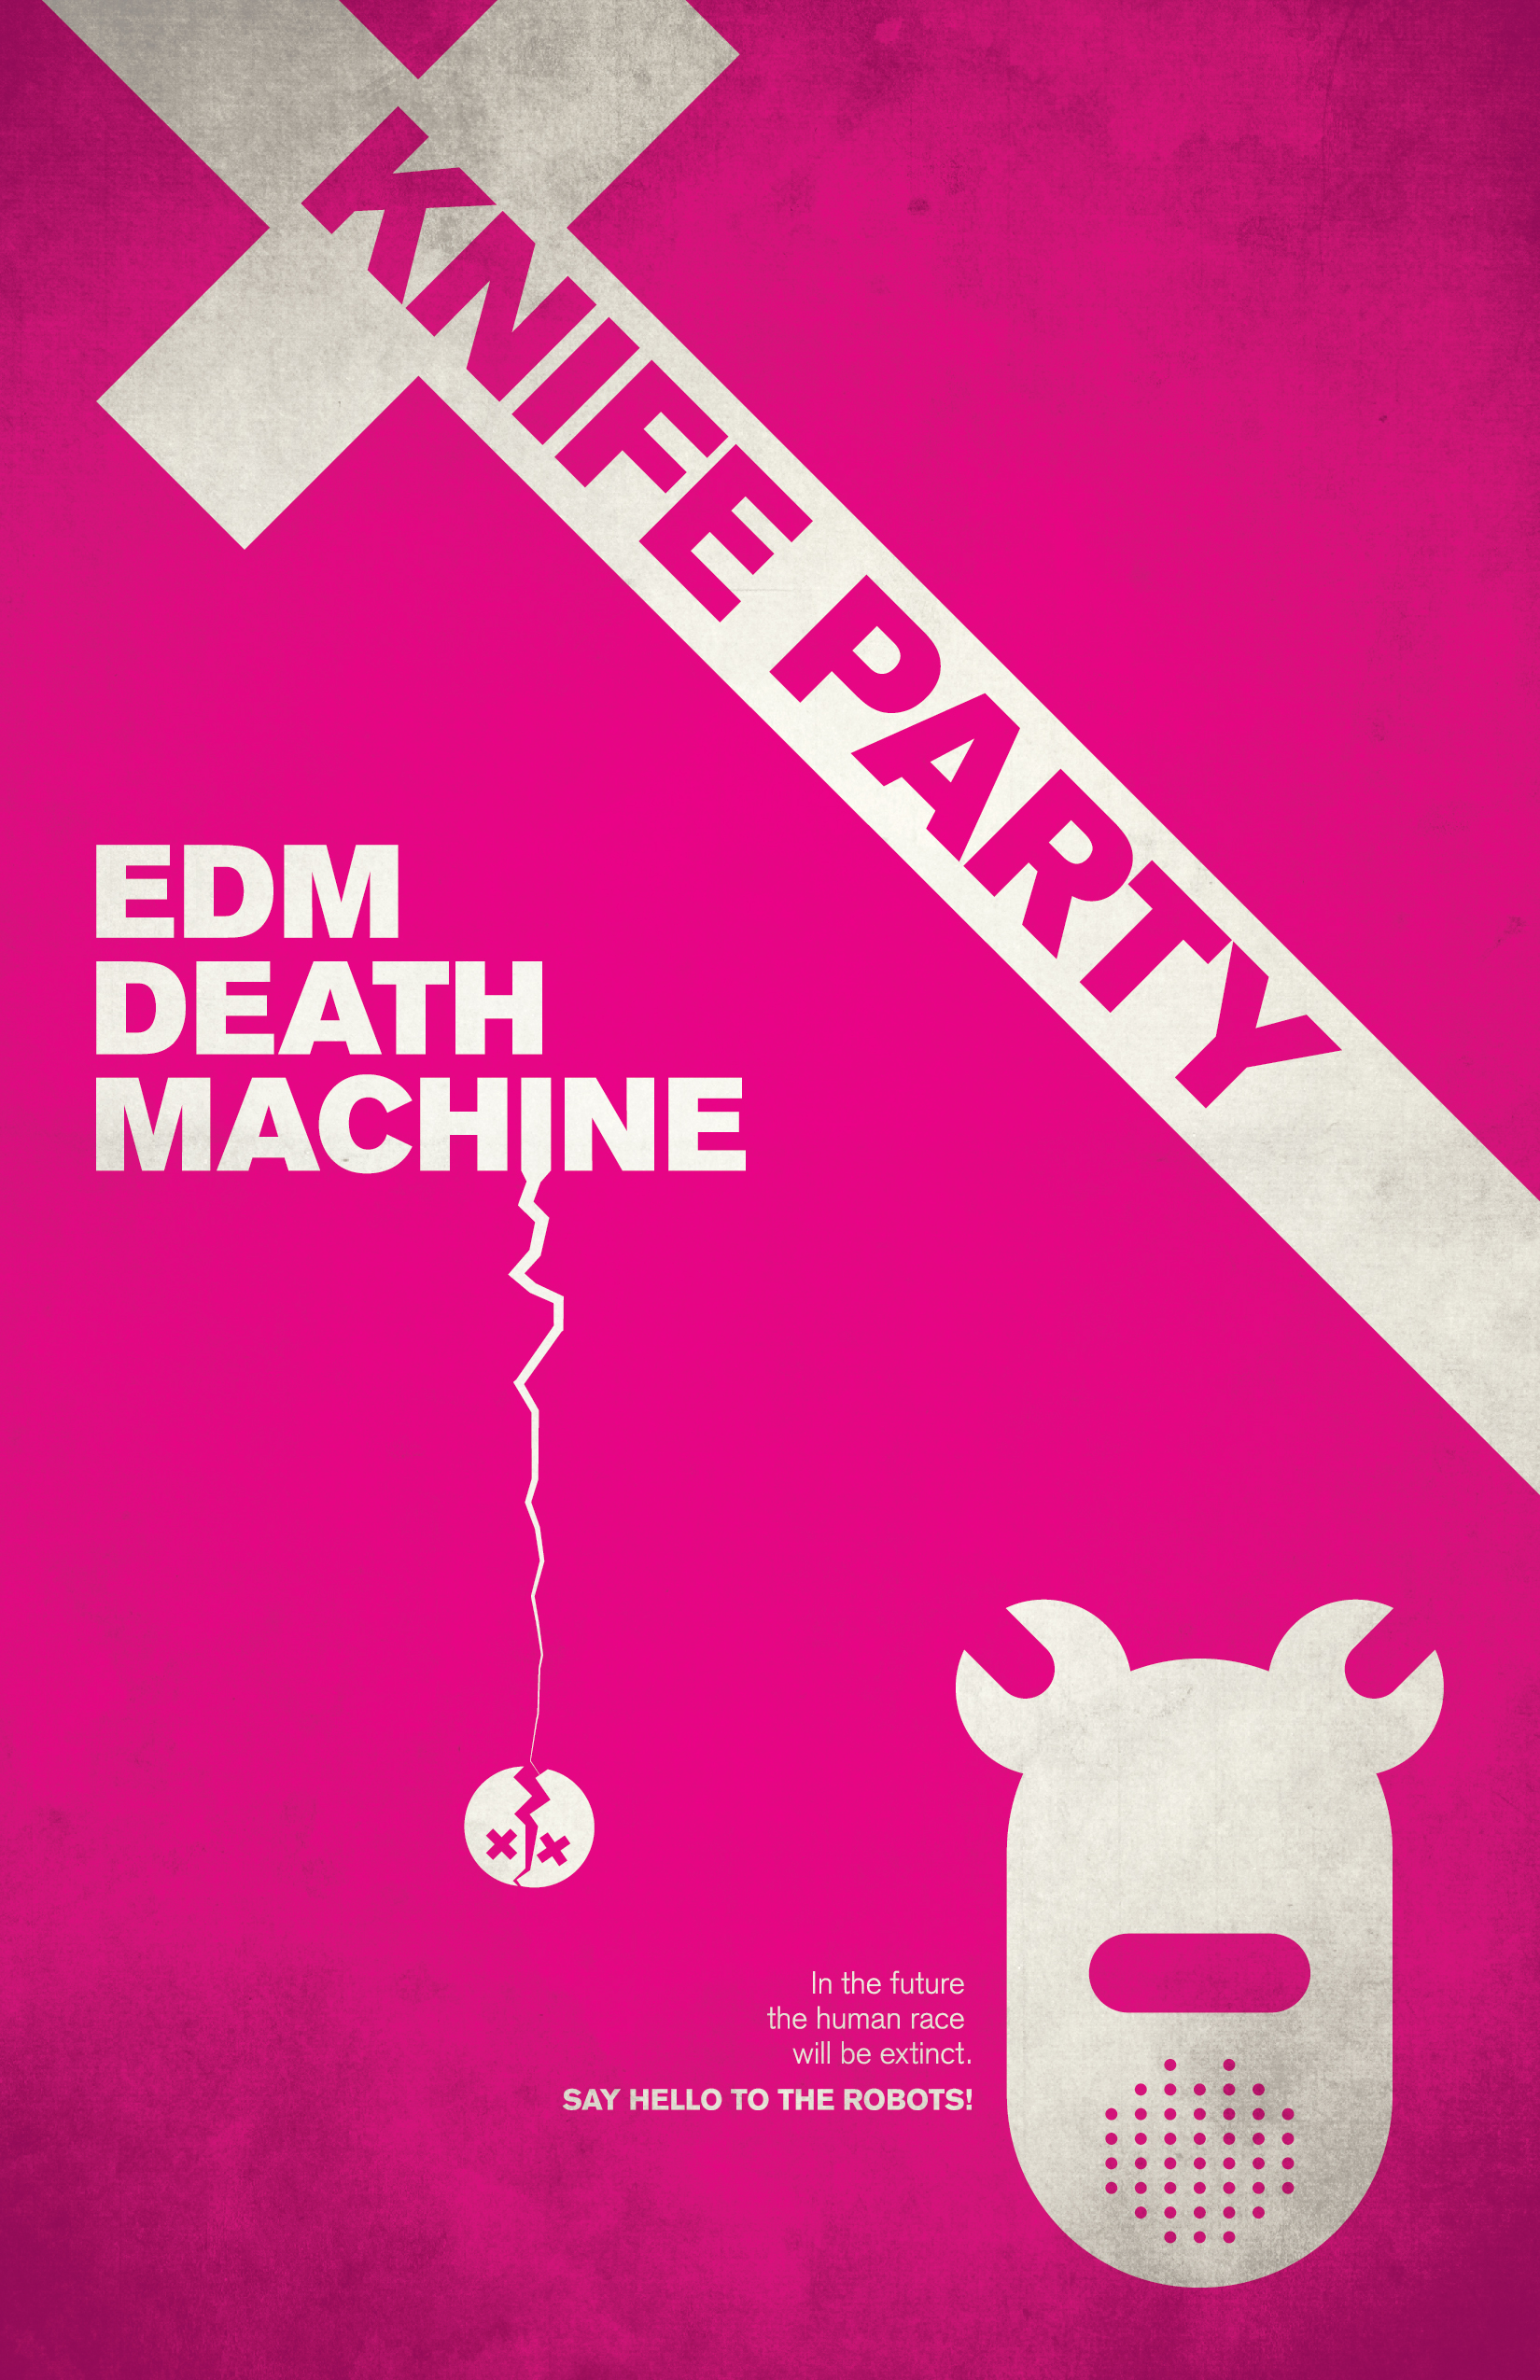 KnifeParty_DeathMachine_001.jpg